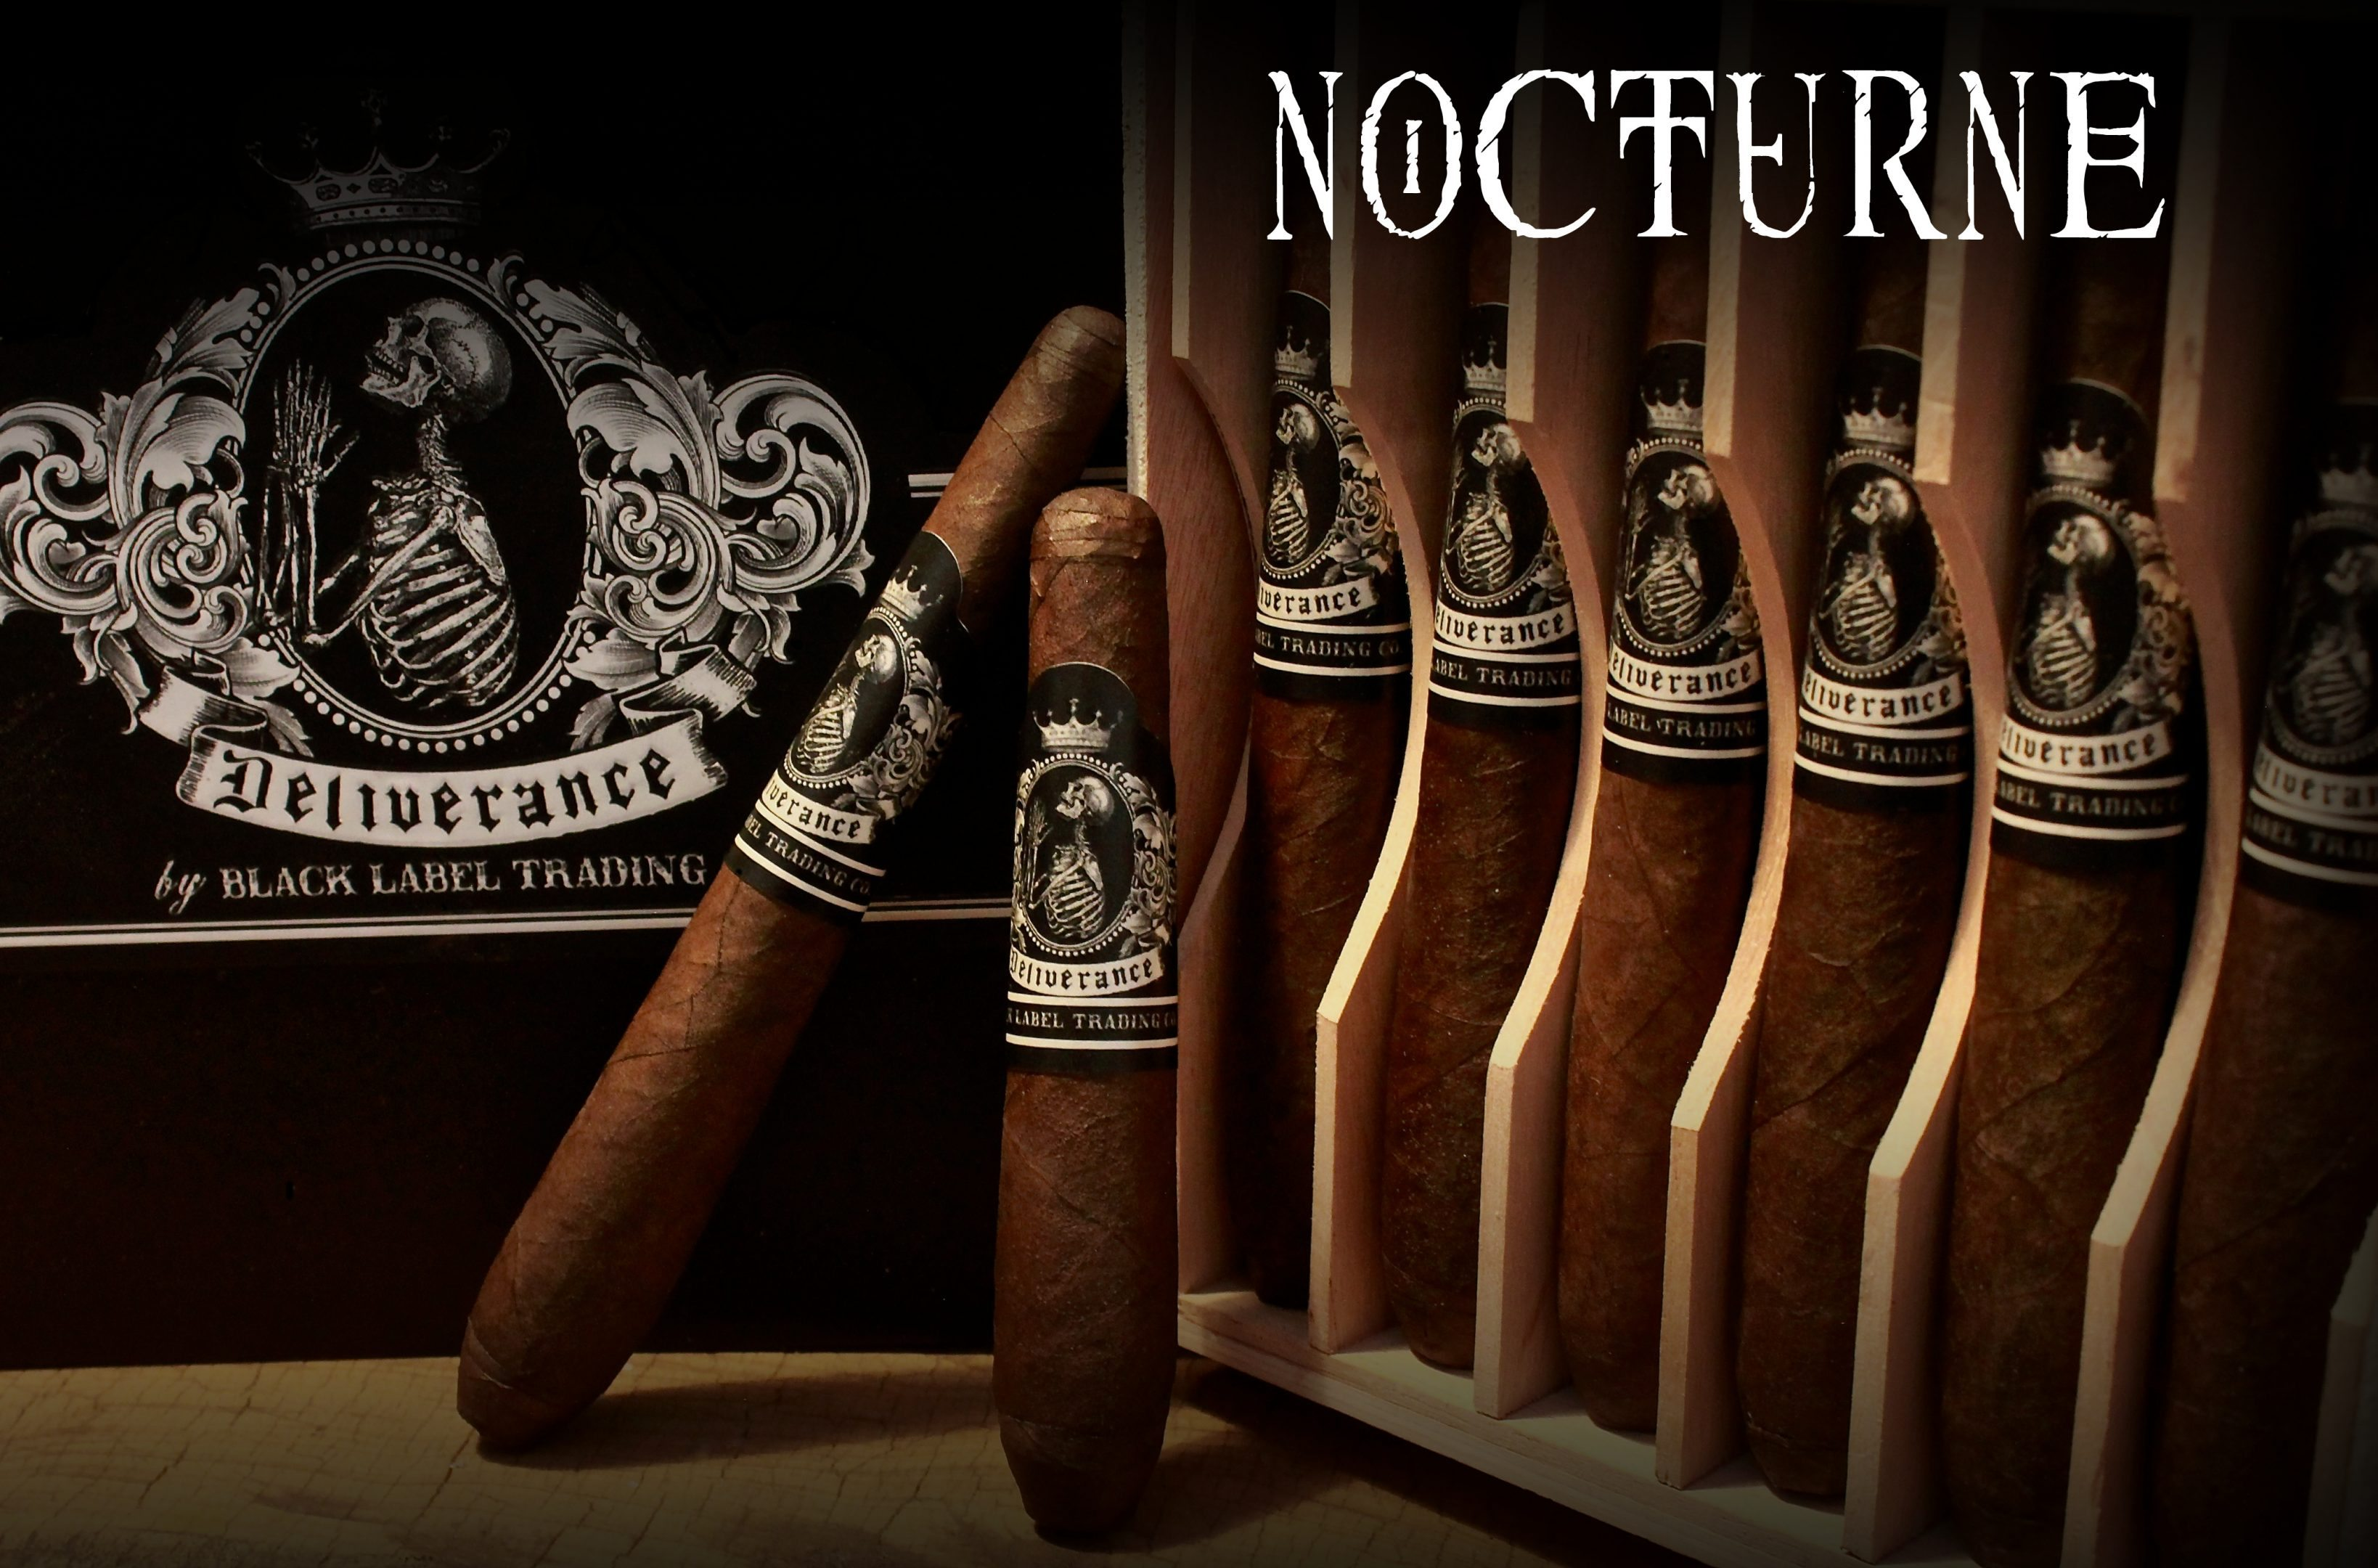 Cigar News: Black Label Trading Company Shipping Deliverance Nocturne 2016